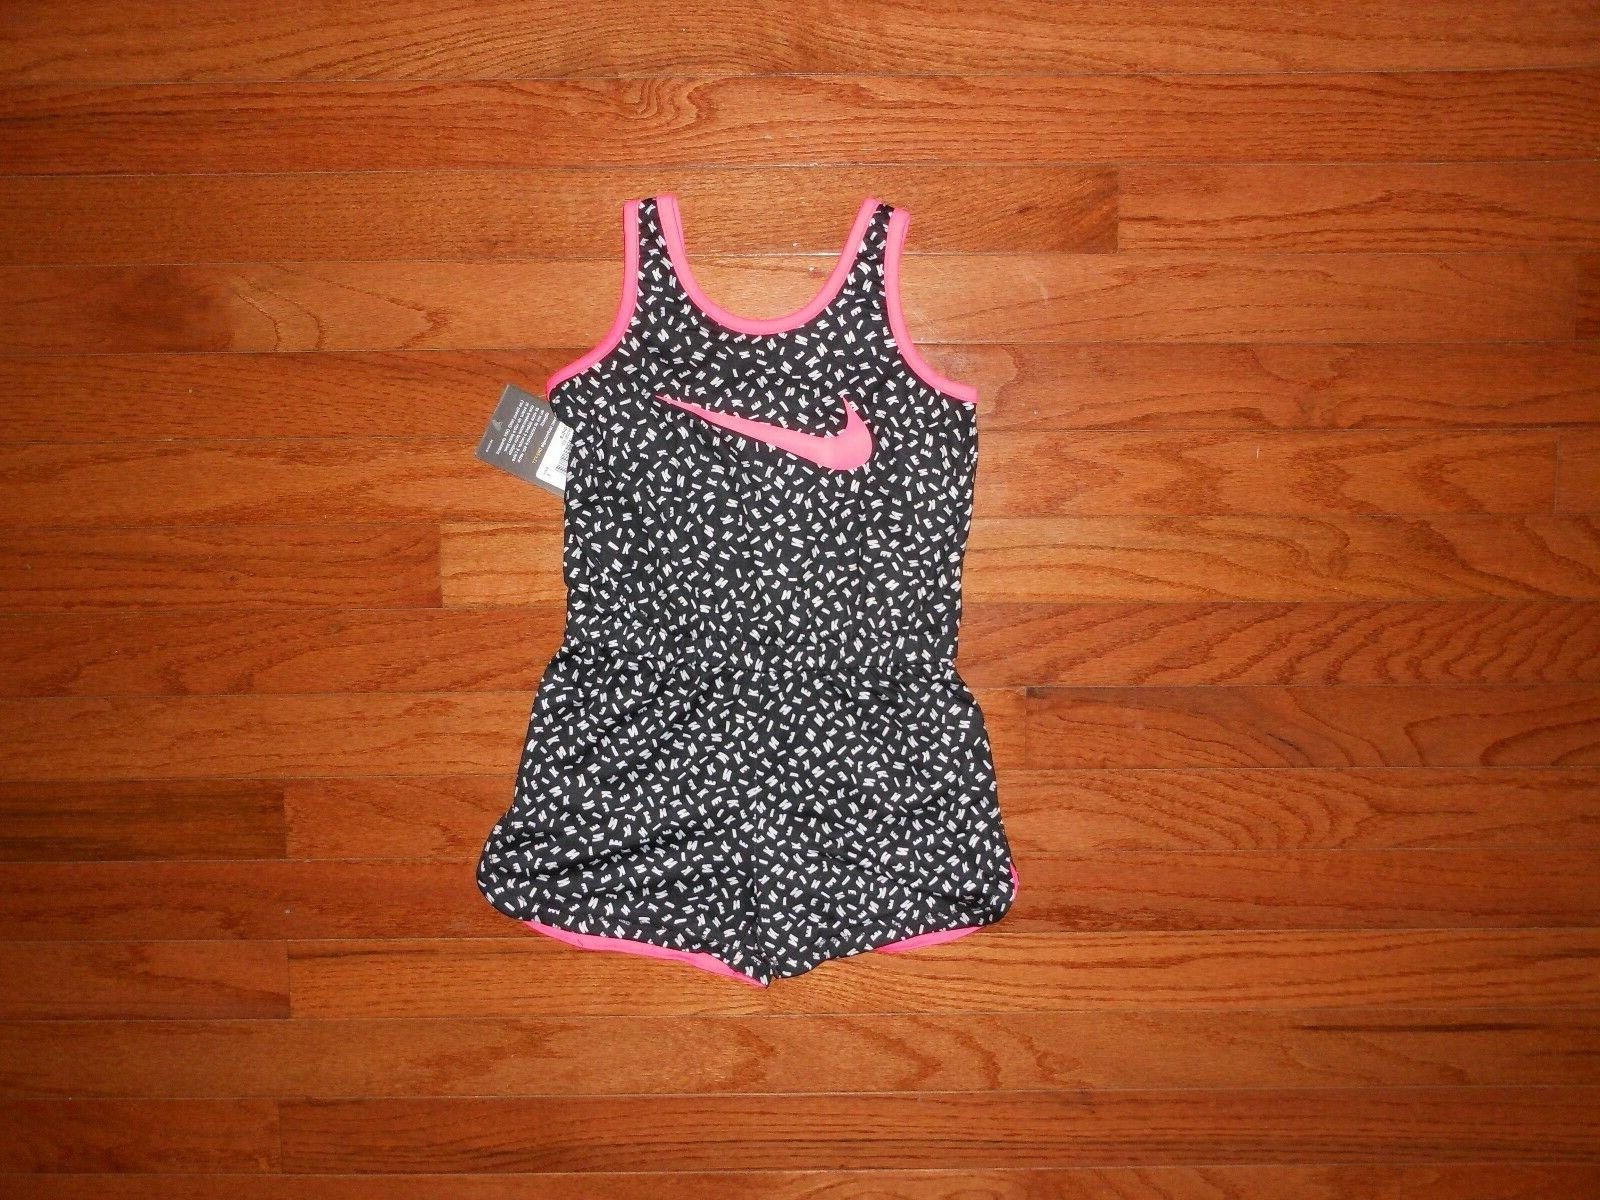 nwt little girls black romper outfit size